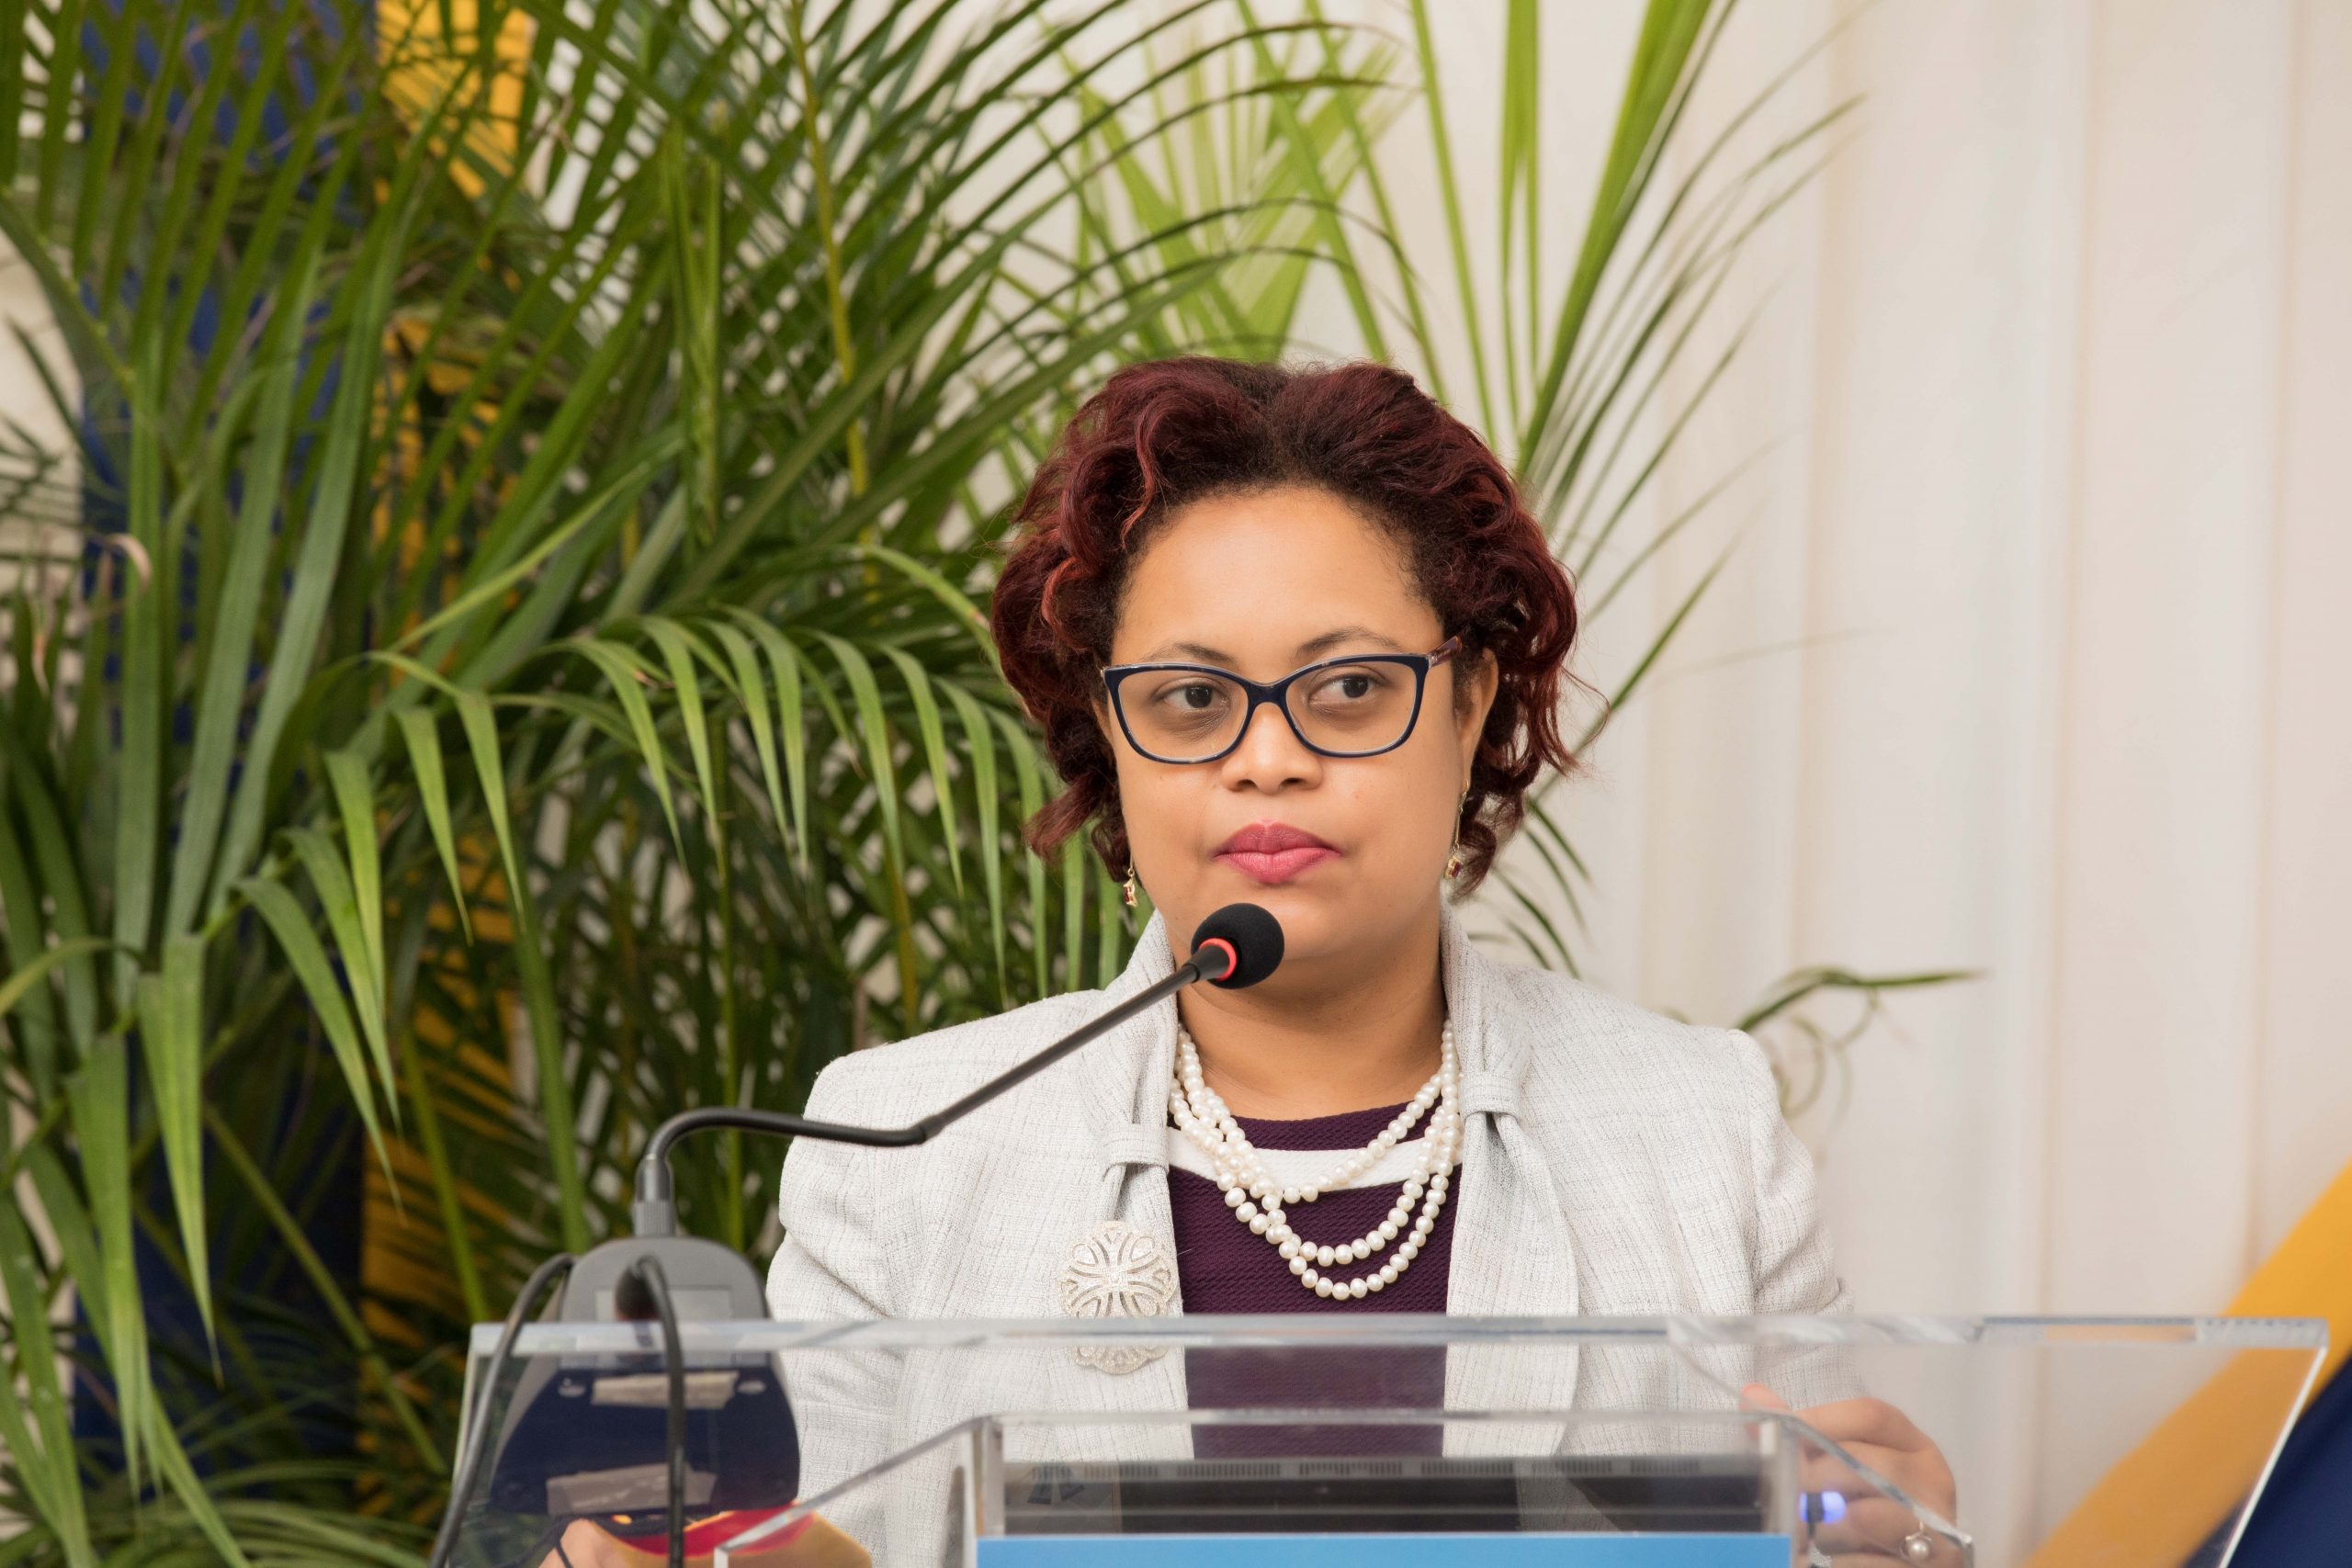 Financial Inclusion Coordinator at the Bank of Jamaica, Melanie Williams engages participants on Consumer Protection Mechanisms for the Banking System at the JDIC's You've Been Upgraded Digital Townhall.